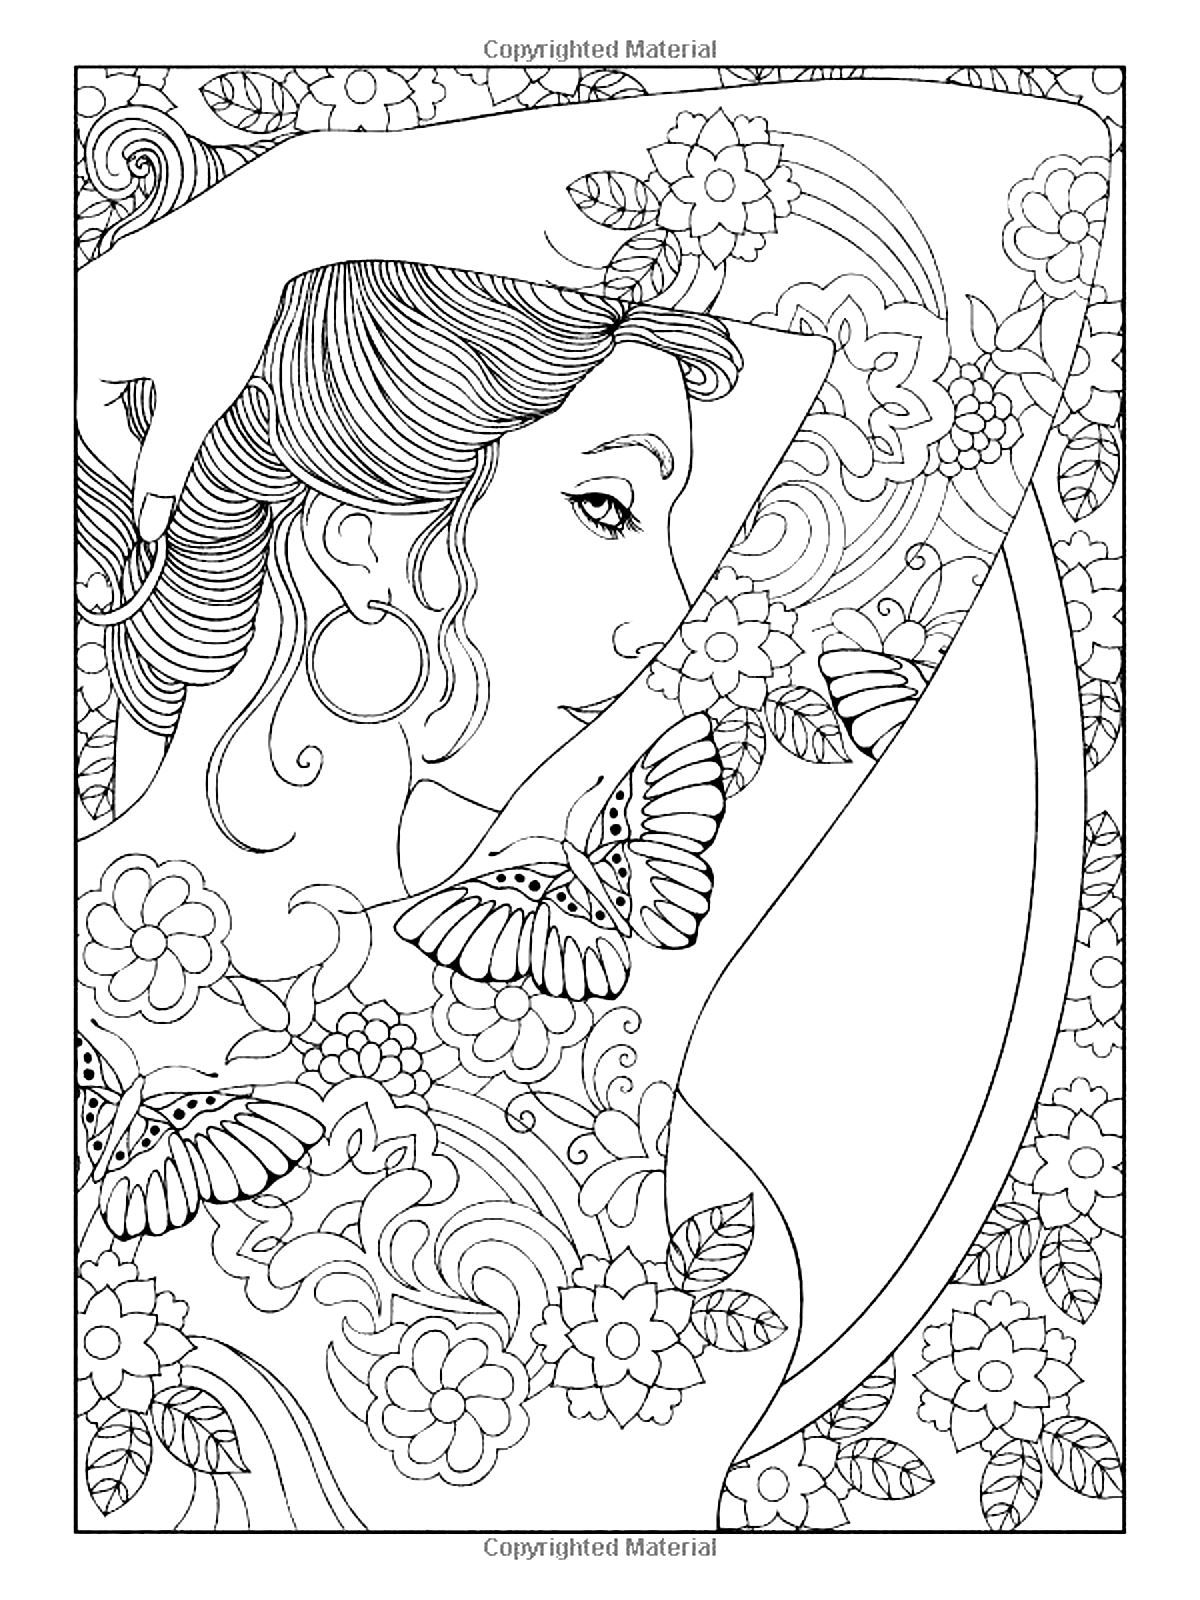 Staring At Her From The Gallery Tattoo Designs Coloring Books Coloring Books Coloring Pages